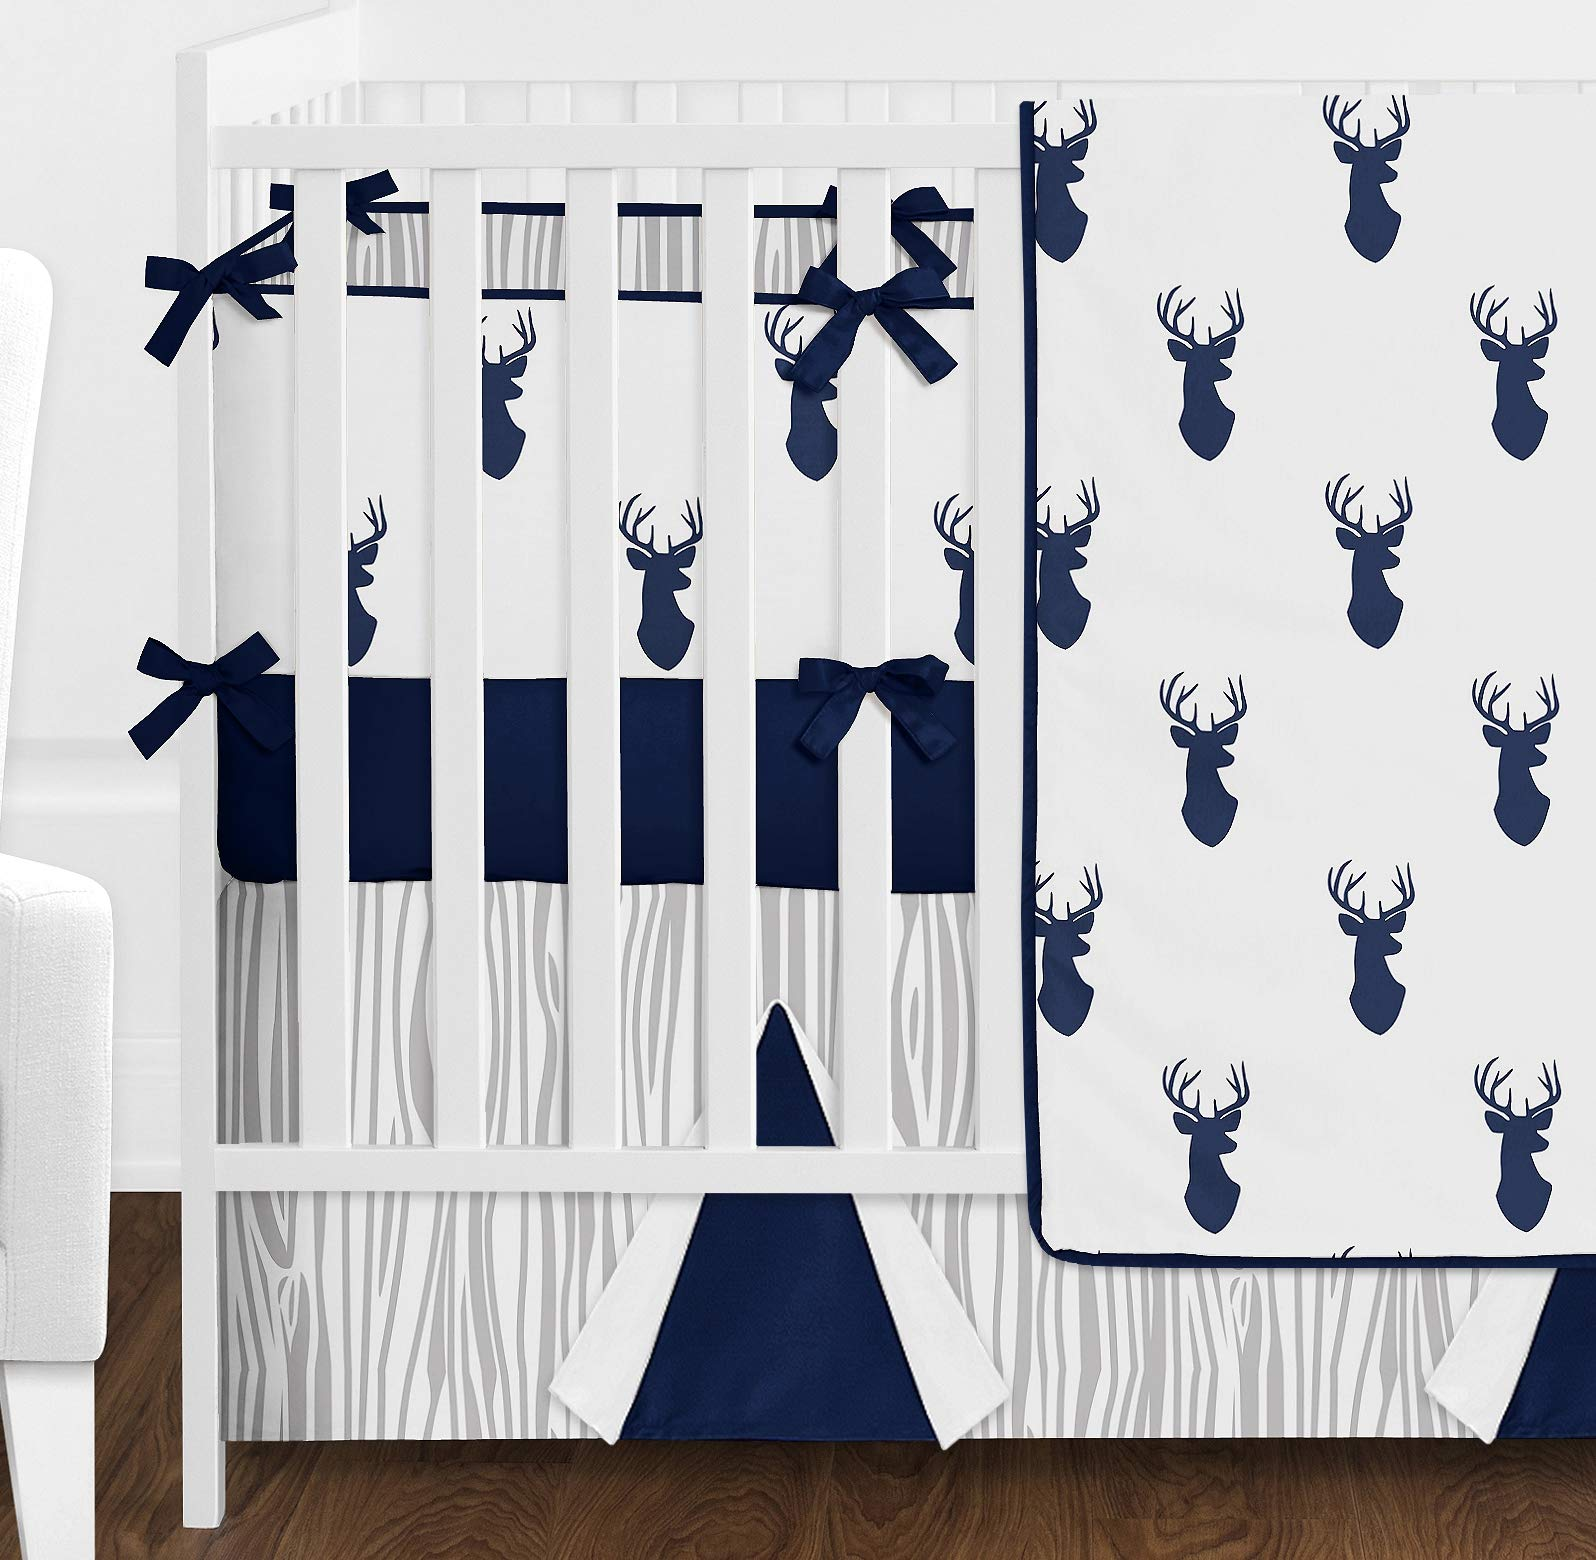 Sweet Jojo Designs 9-Piece Navy Blue White and Gray Woodland Deer Print Crib Baby Bedding Set with Bumper for a Newborn Boy